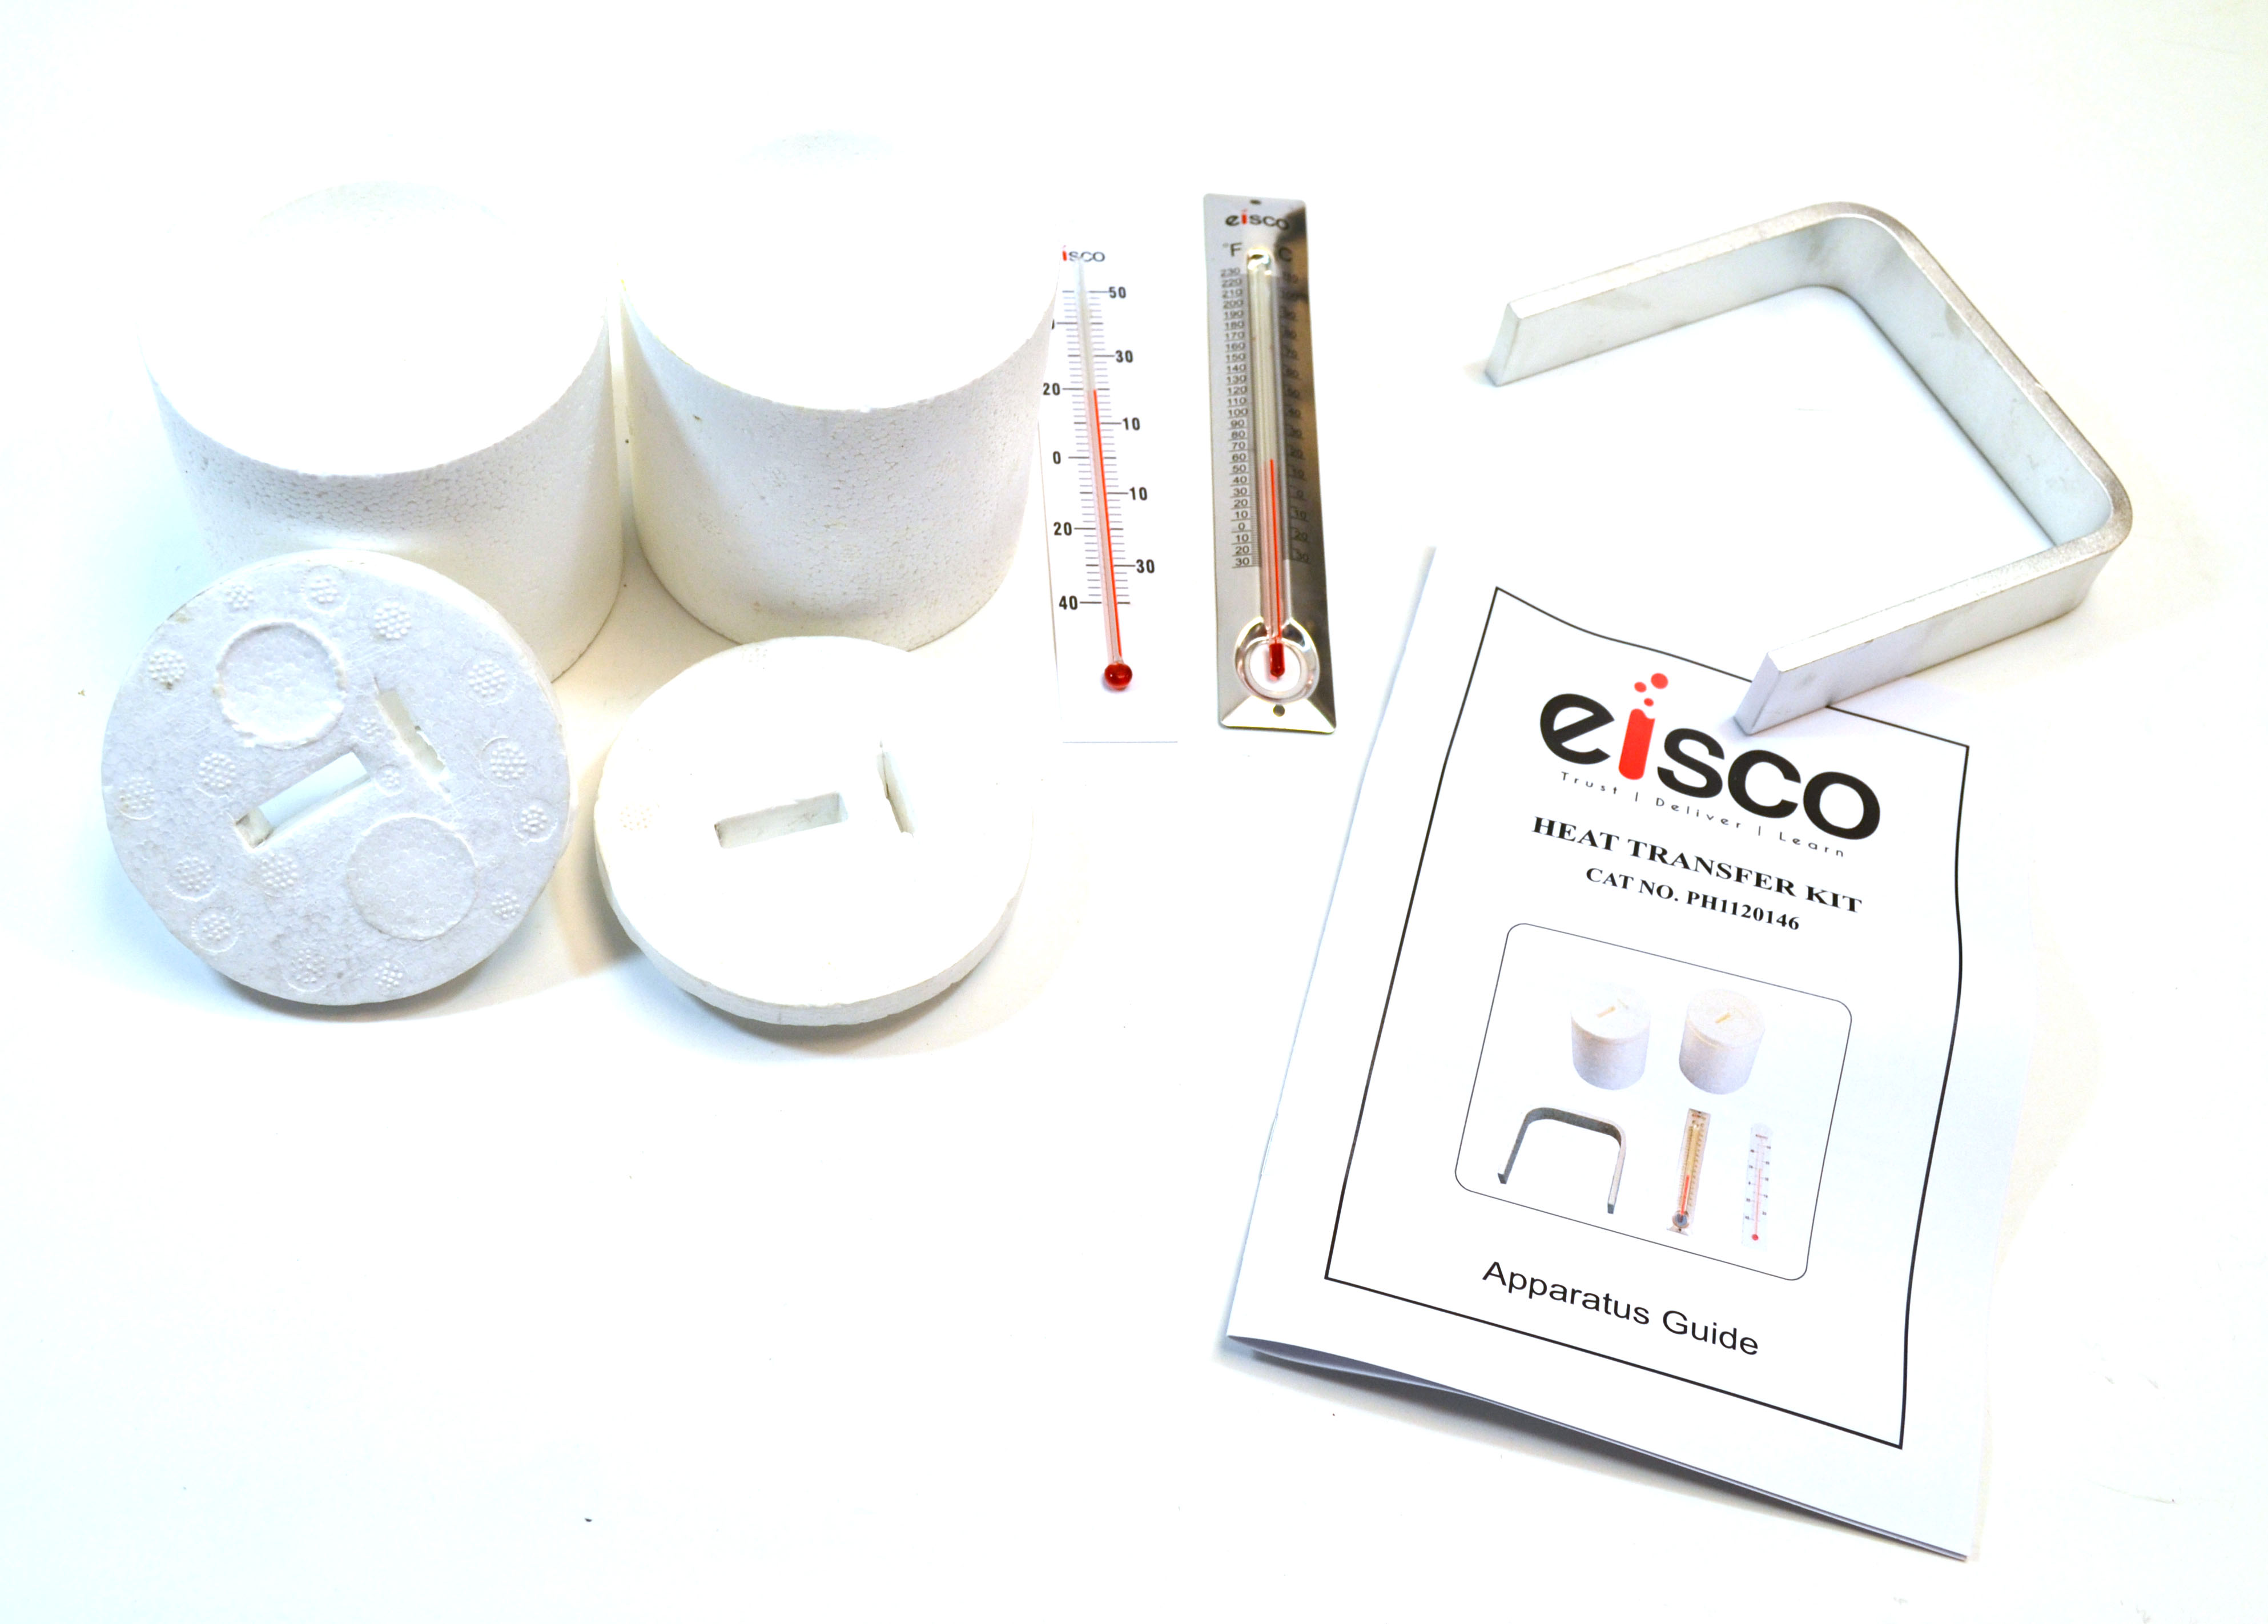 Eisco Labs Heat Transfer Kit with 2 Calorimeters with Lids, 1 Aluminum Heat Transfer Bar, and 1 Low Range... by EISCO